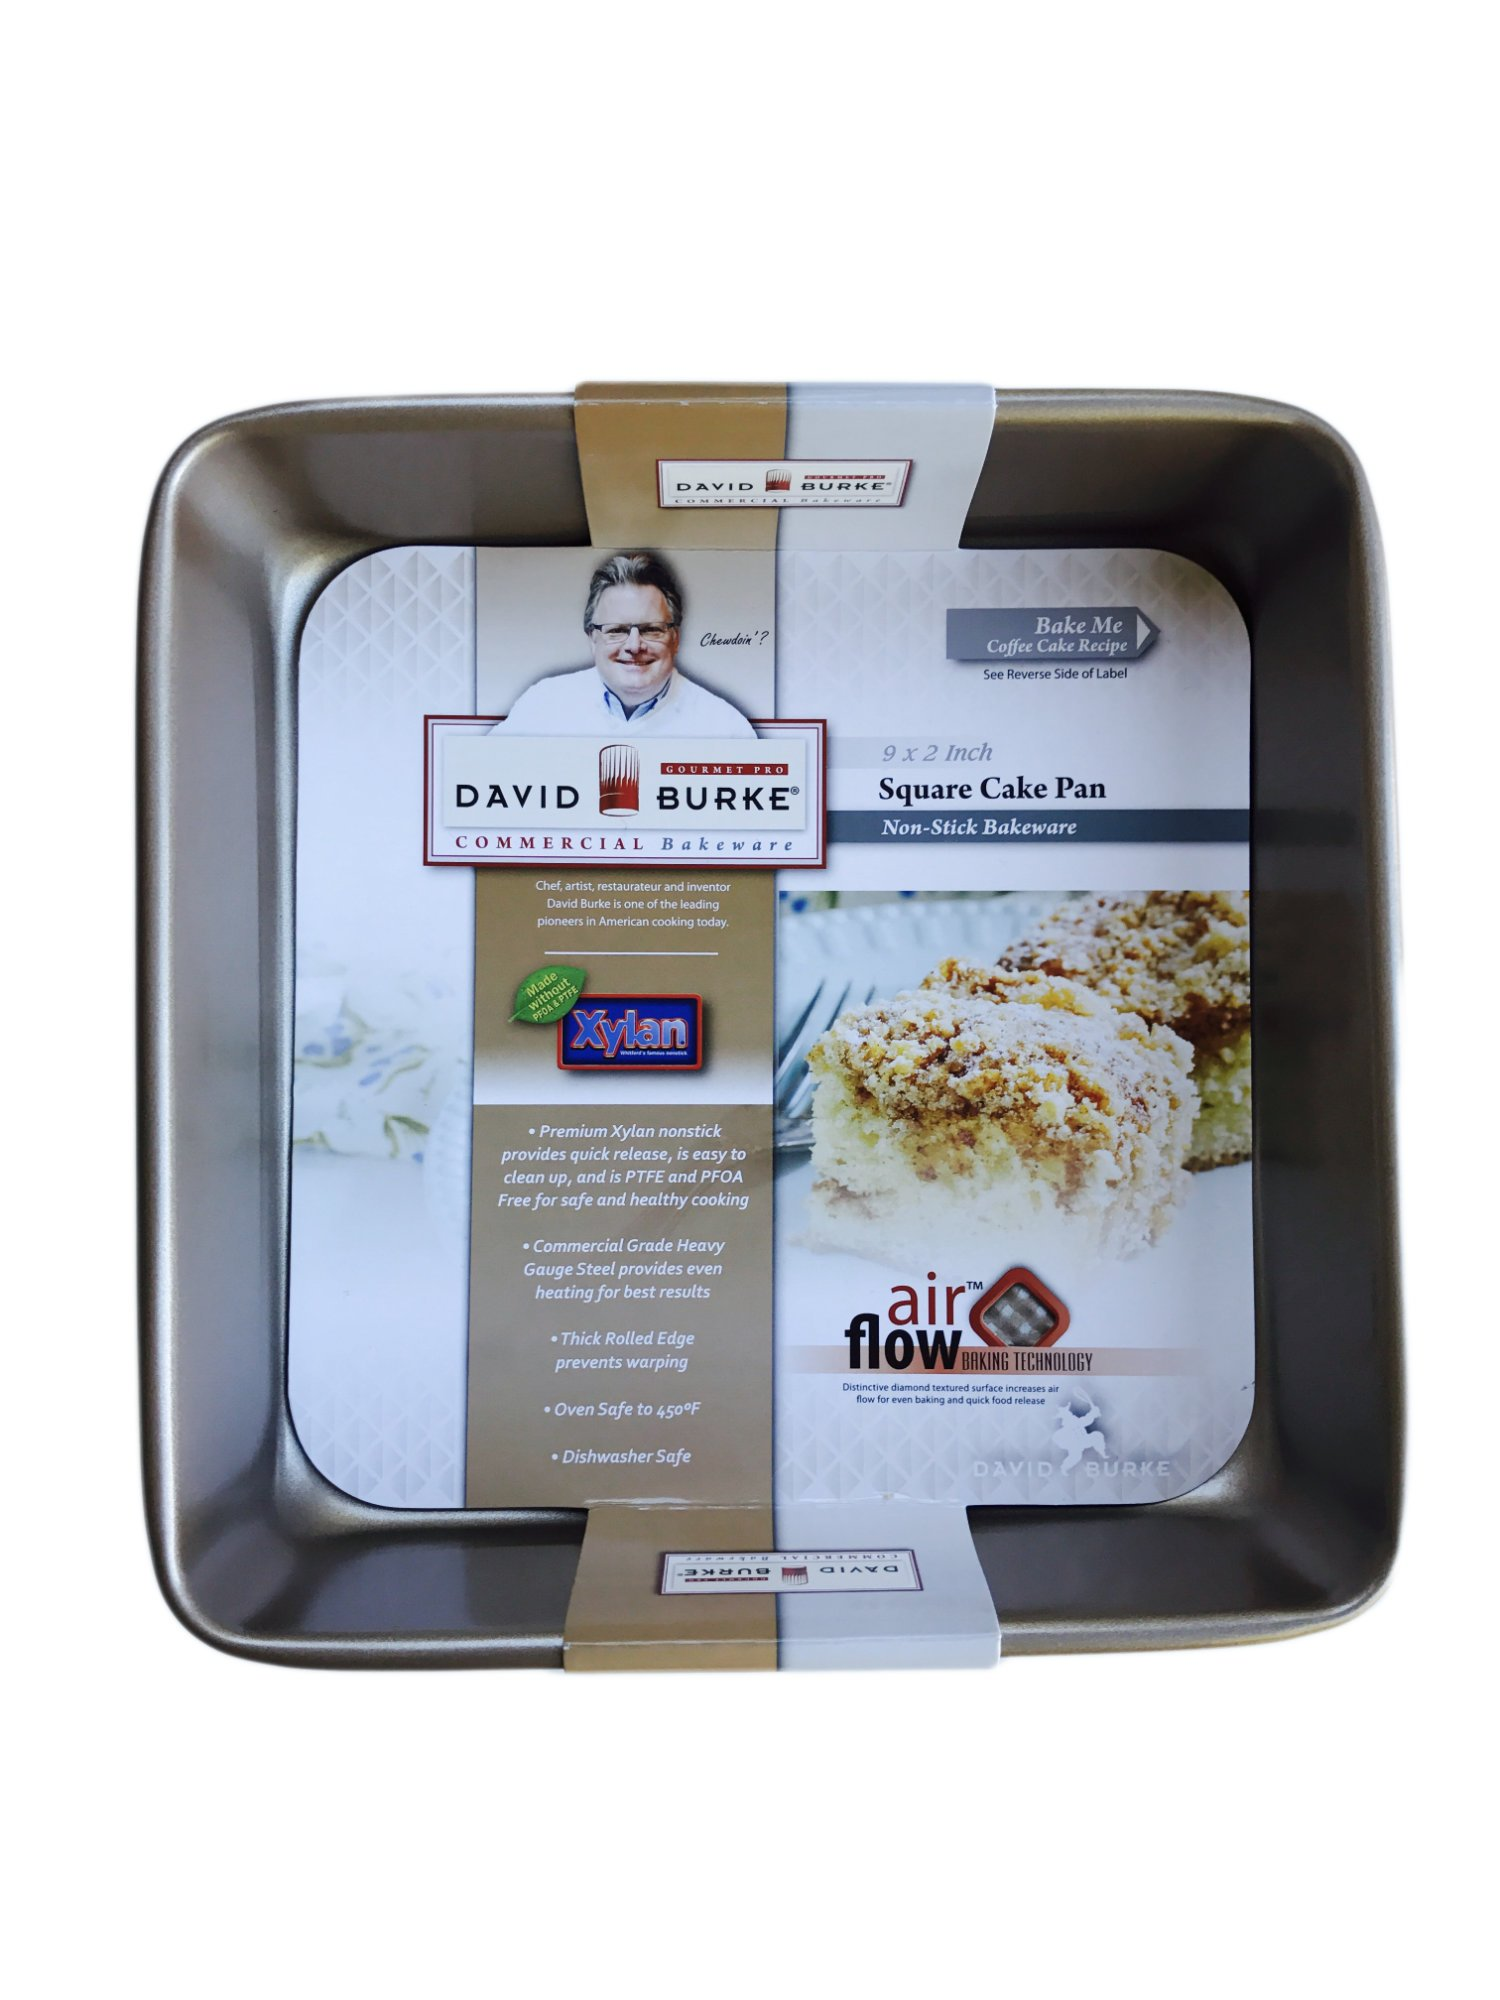 David Burke Kitchen Commerical Weight Bronze Square Cake Pan 9 x 9 x 2 Inches